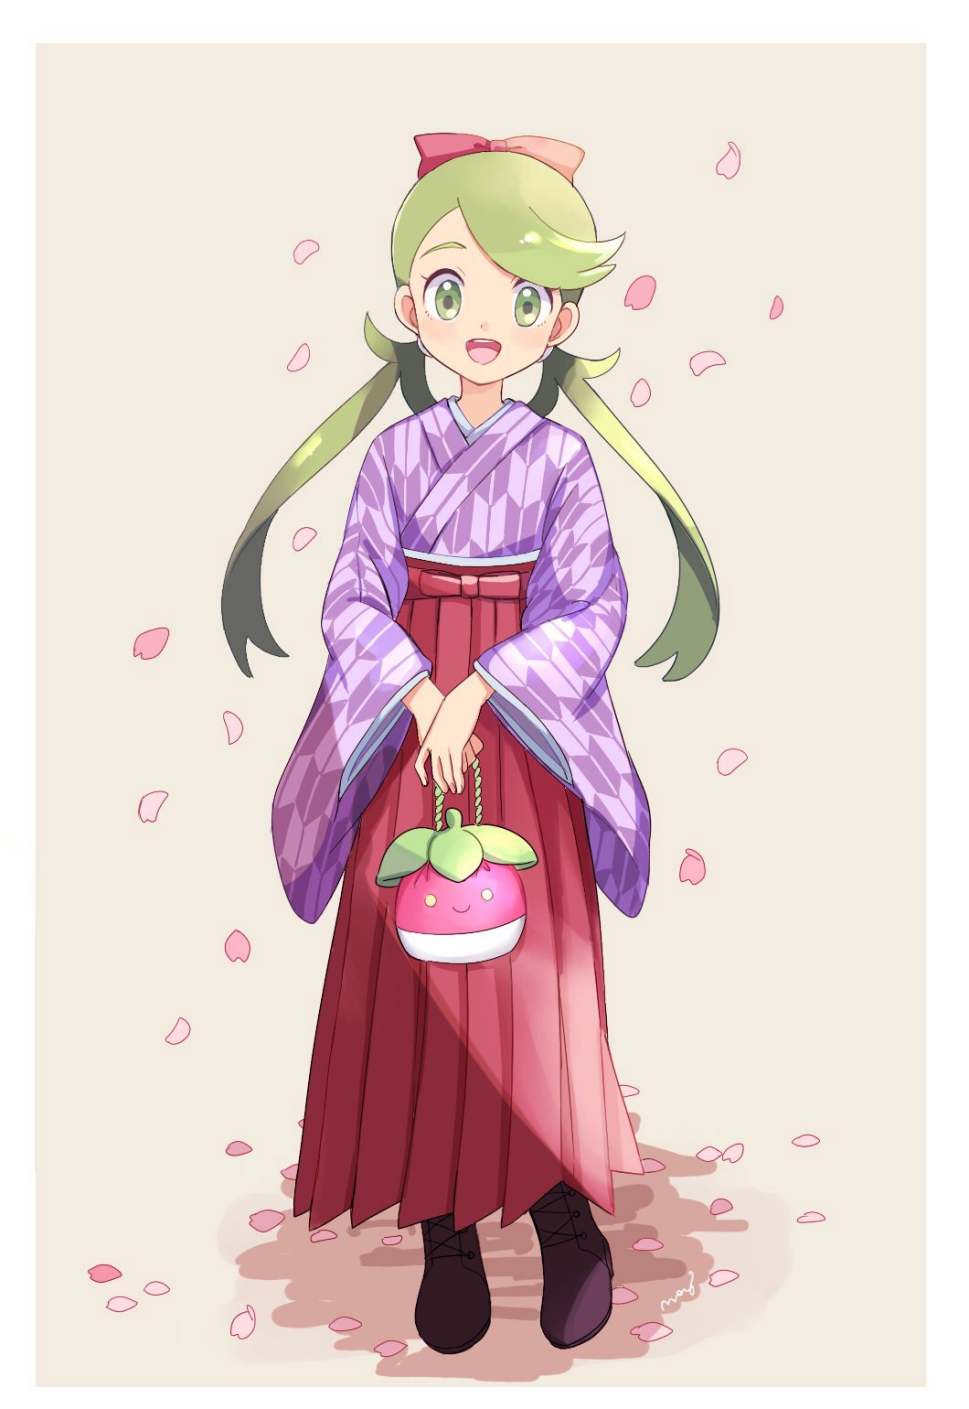 1girl alternate_costume artist_name black_footwear boots border bounsweet bow brown_background chestnut_mouth cross-laced_footwear flat_chest full_body gen_7_pokemon green_eyes green_hair hair_bow hair_tie hakama hands_together happy highres holding japanese_clothes kimono lace-up_boots long_hair long_sleeves looking_at_viewer mao_(pokemon) mei_(maysroom) open_mouth petals pokemon pokemon_(game) pokemon_sm purple_kimono red_bow red_hakama signature simple_background smile solo standing teeth tied_hair twintails white_border wide_sleeves yagasuri